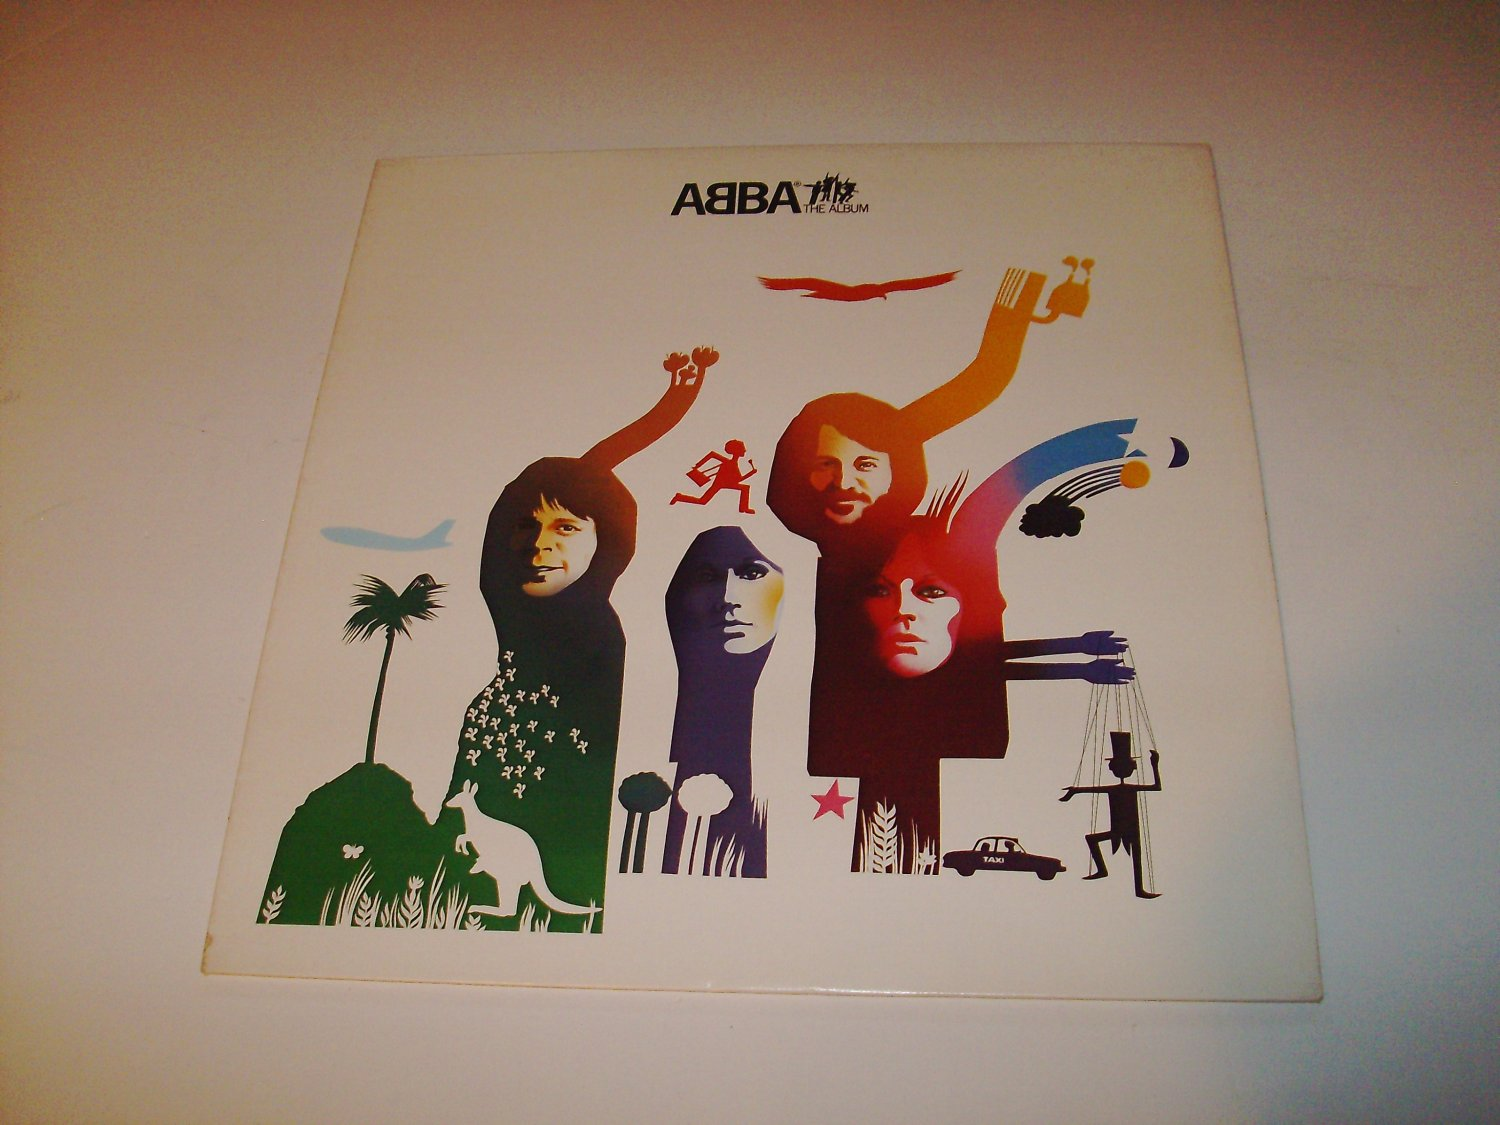 Abba - The Album (SD 19164) on 33 rpm Vinyl LP